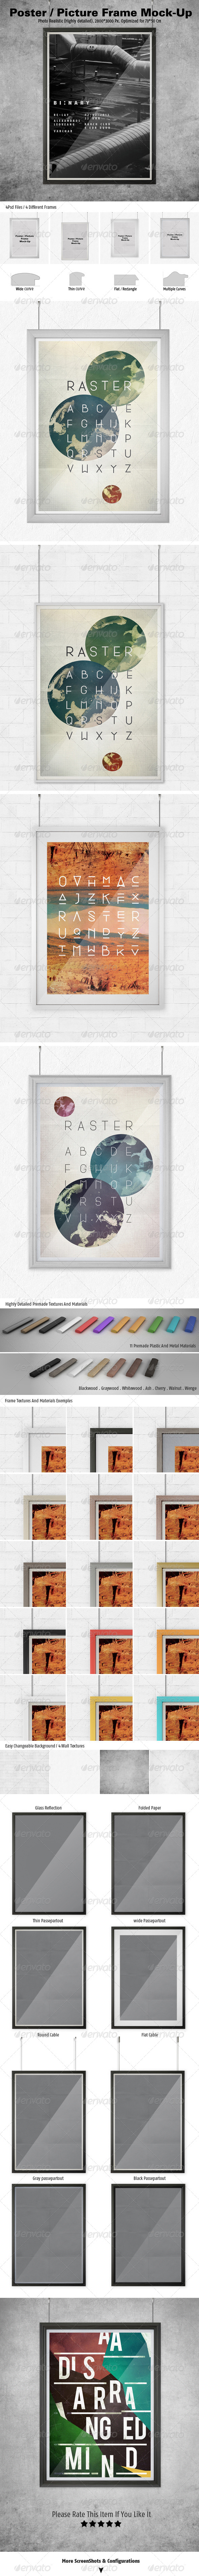 Poster/Picture Frame Mock-ups - Posters Print